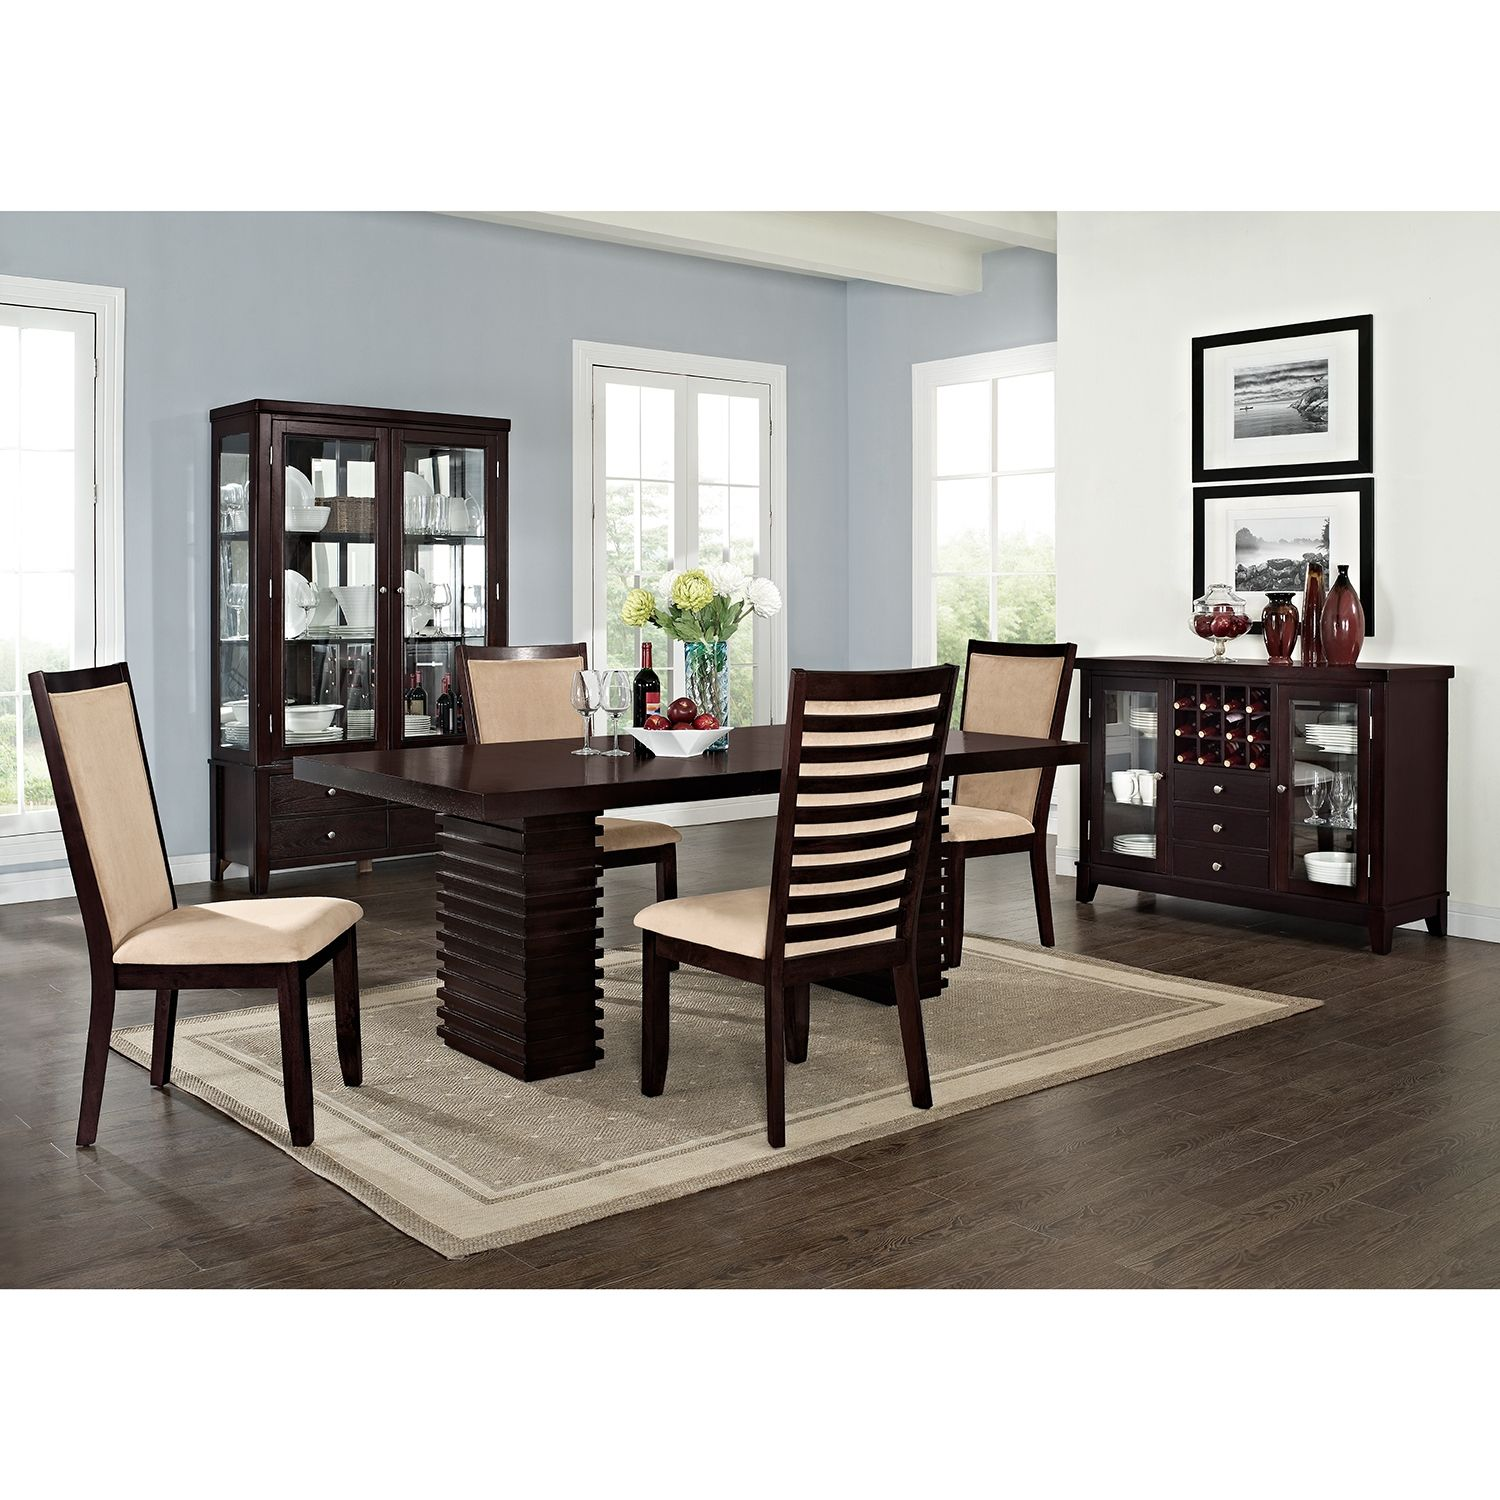 Paragon Dining Room Table